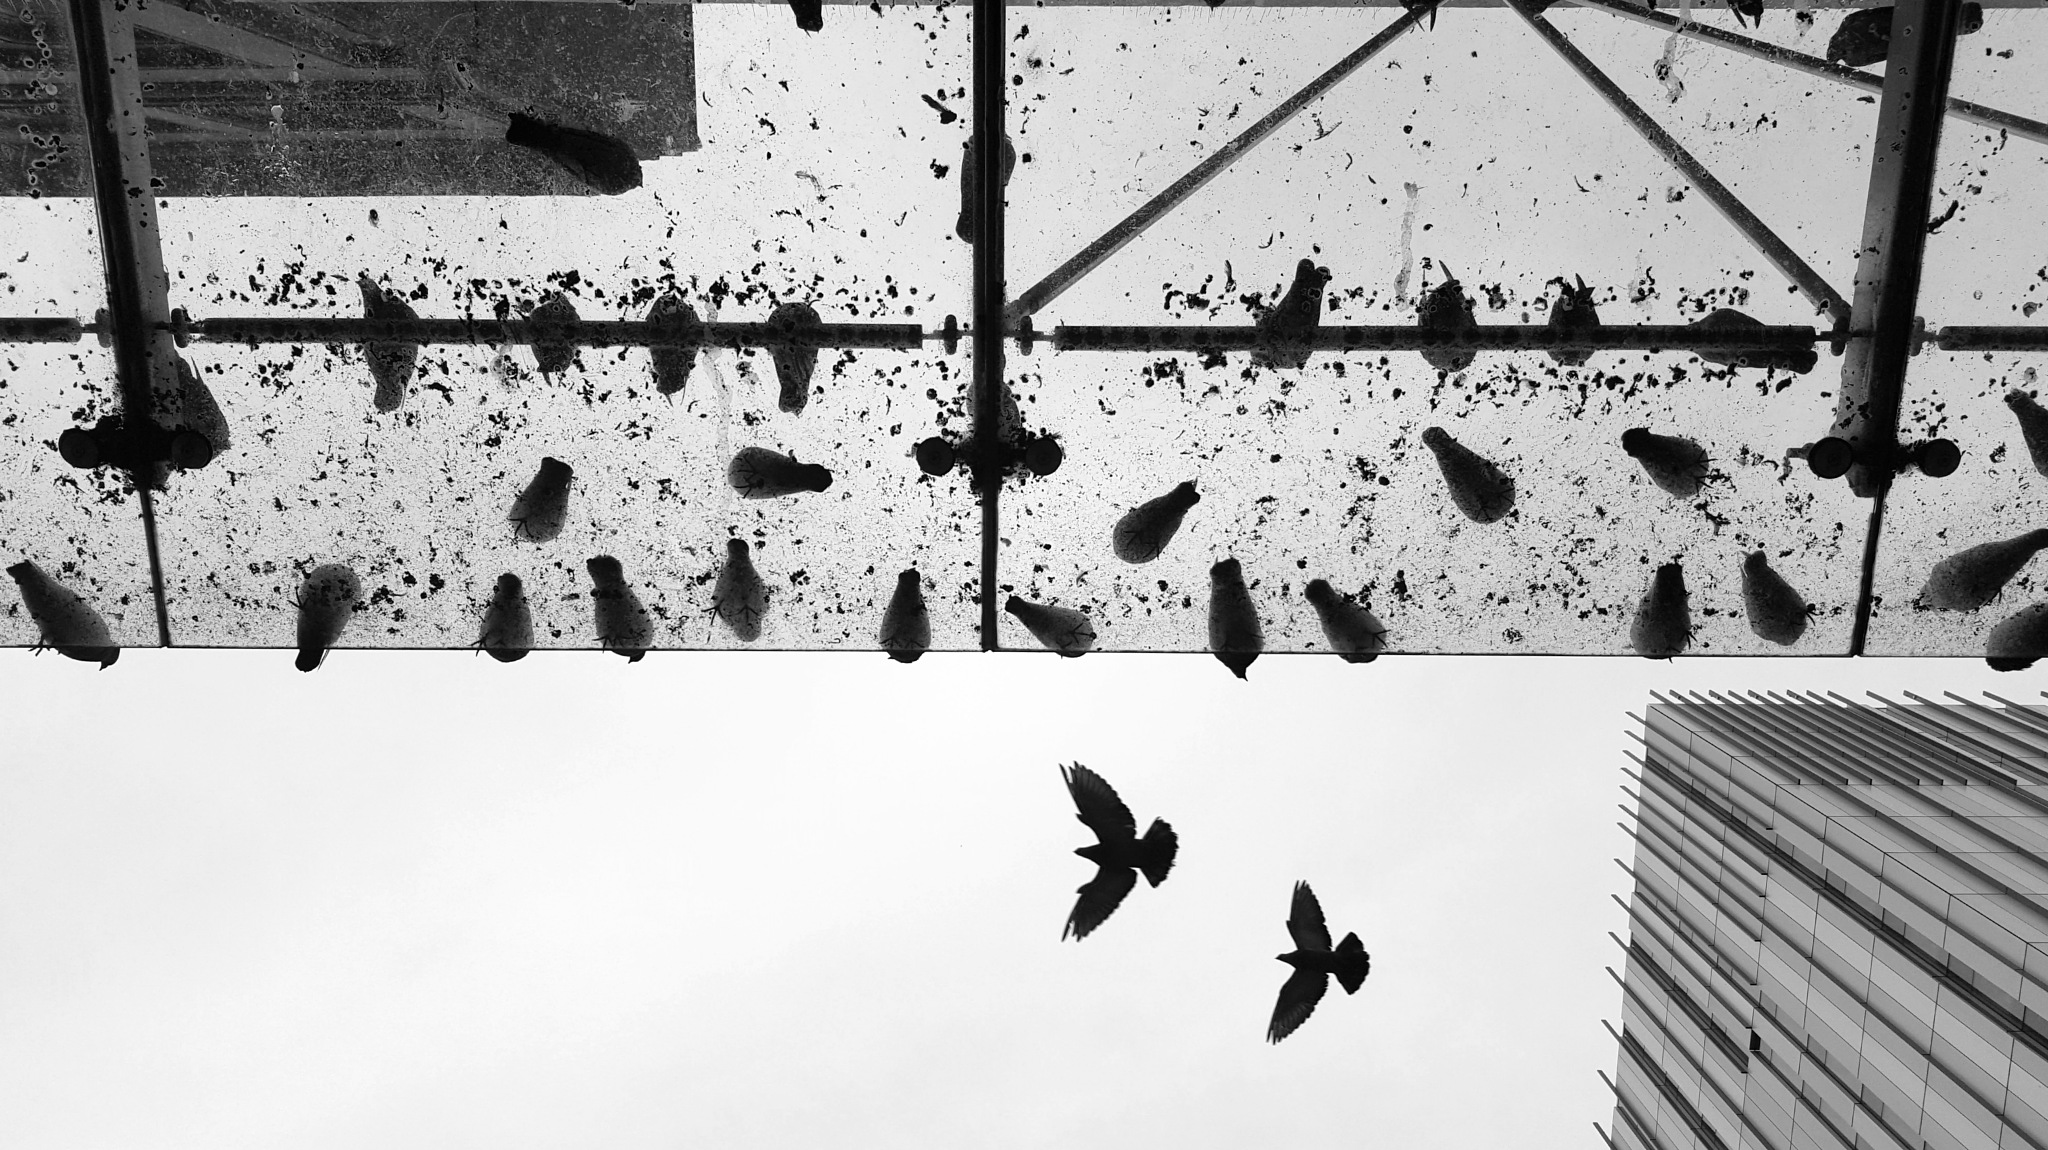 Birds in the city by JuditkaB